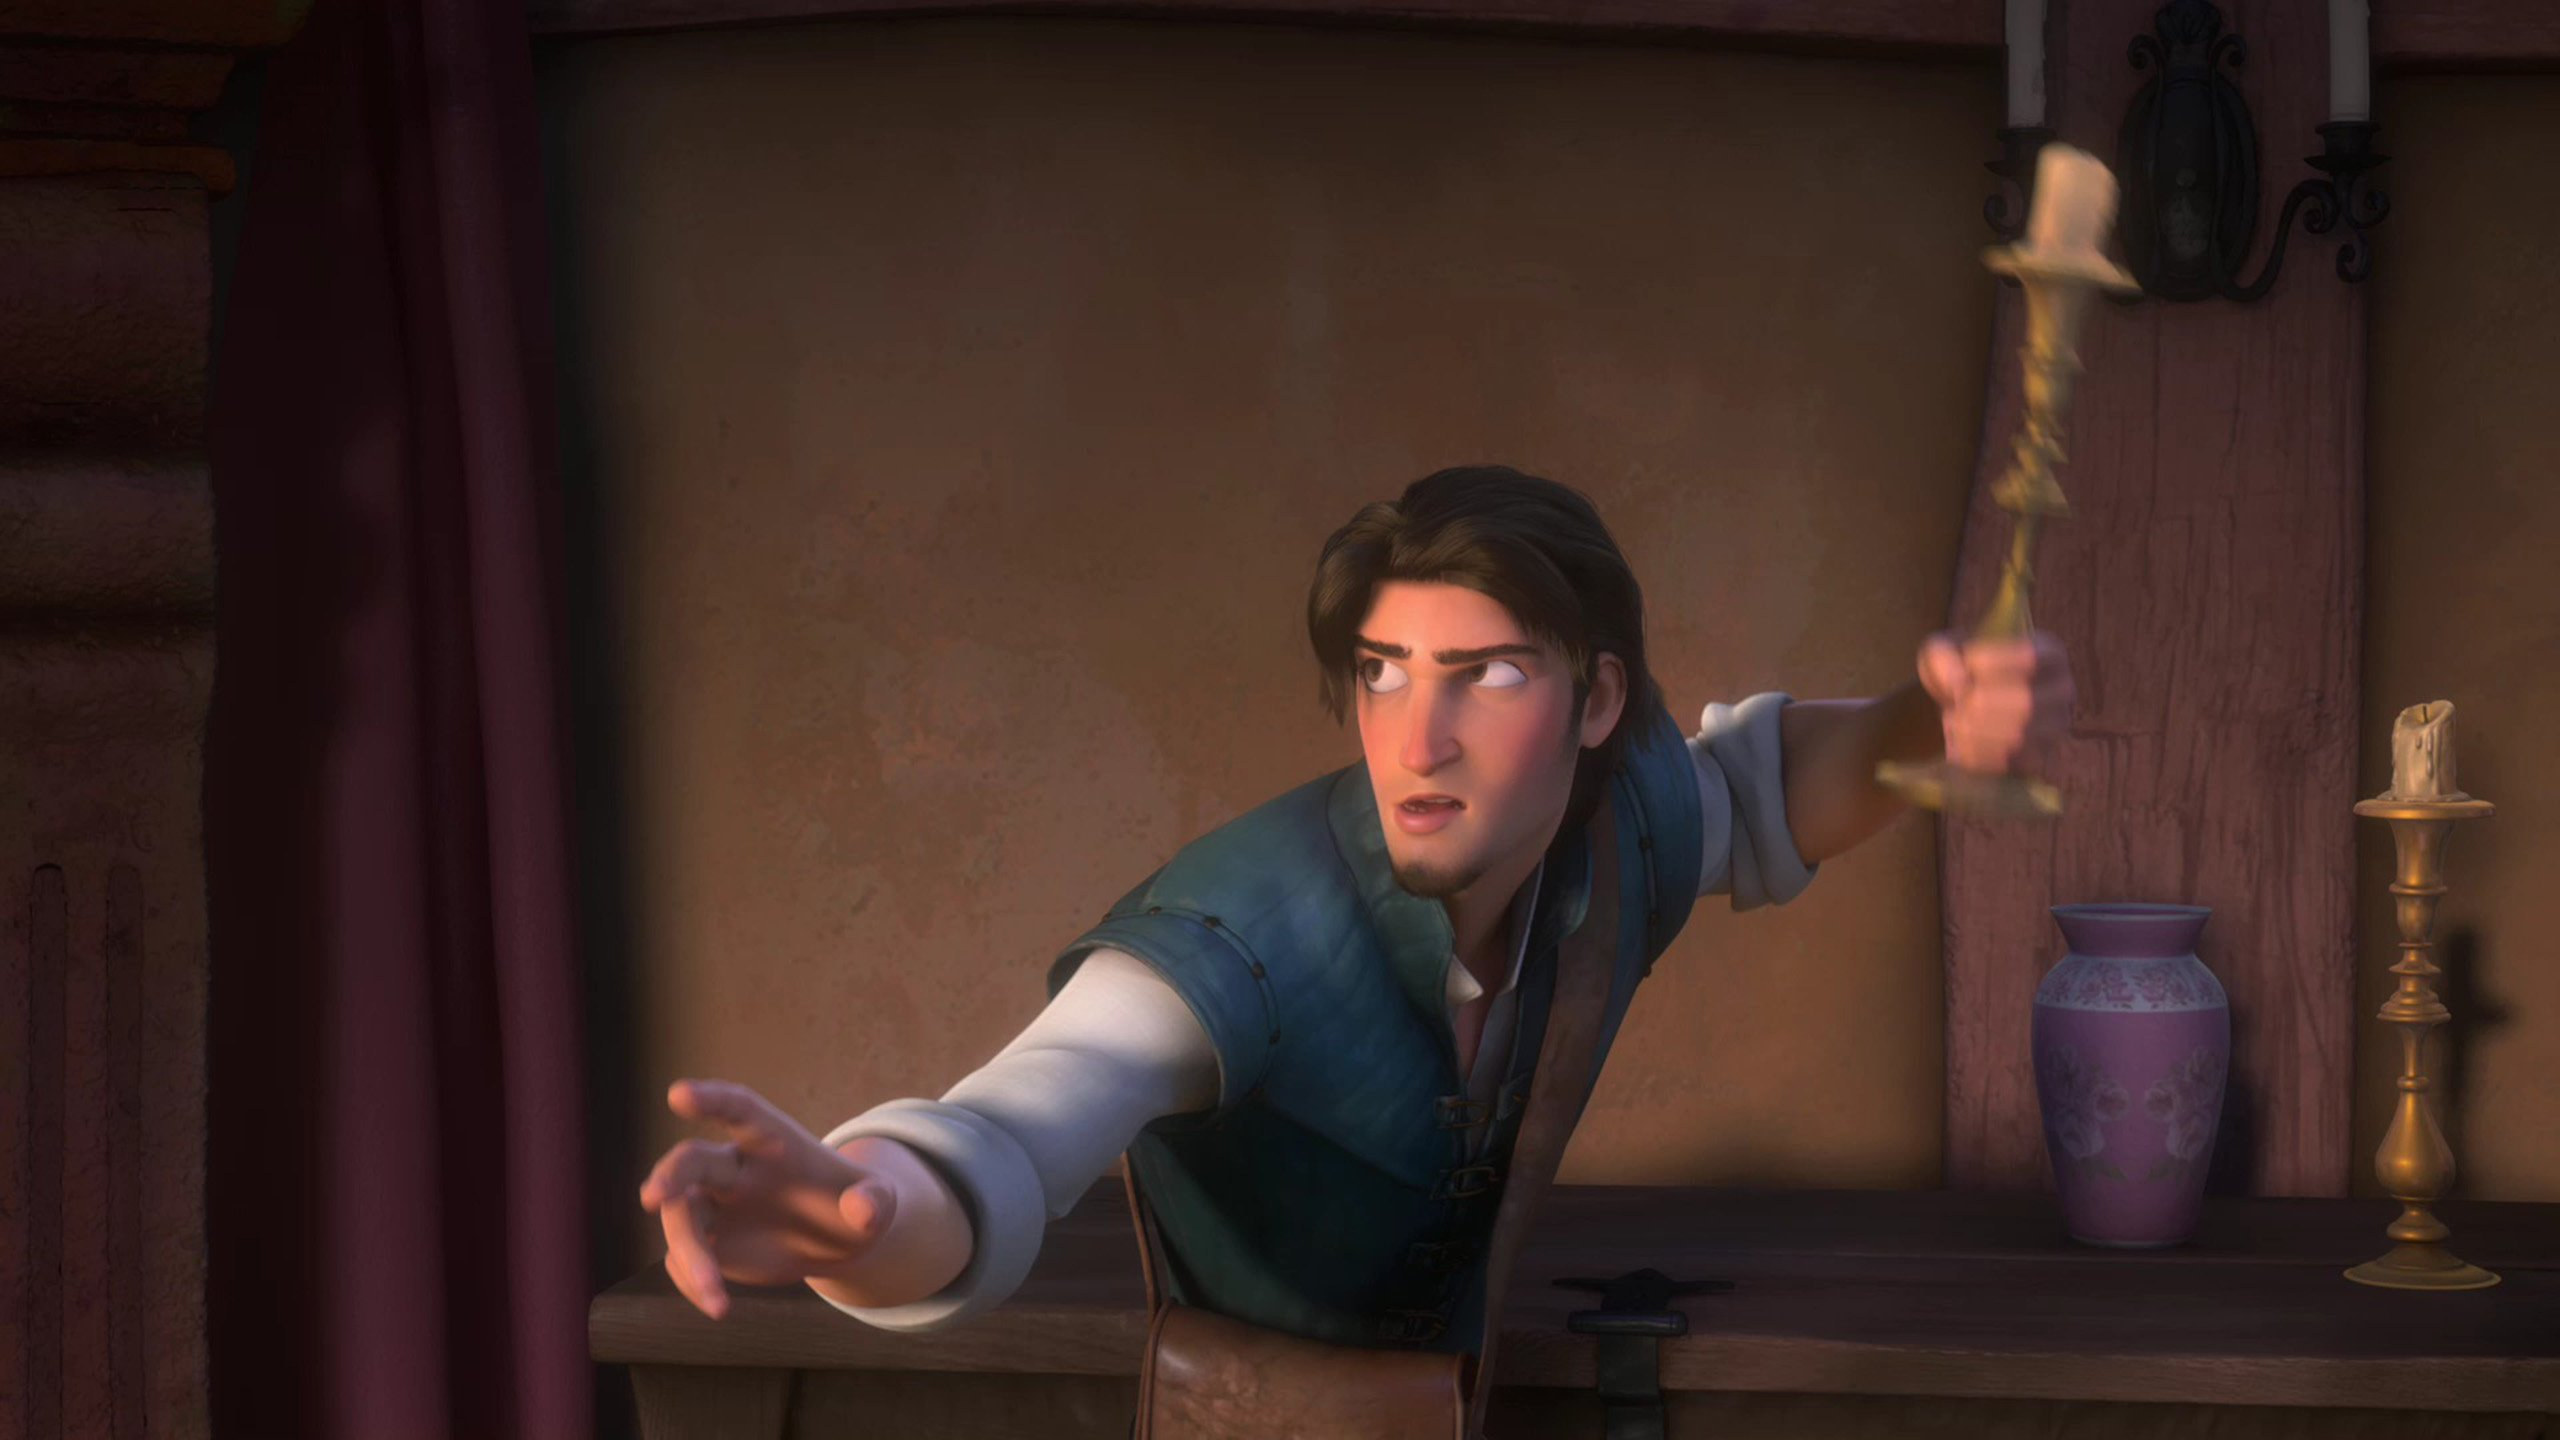 tangled-102(www.TheWallpapers.org).jpg